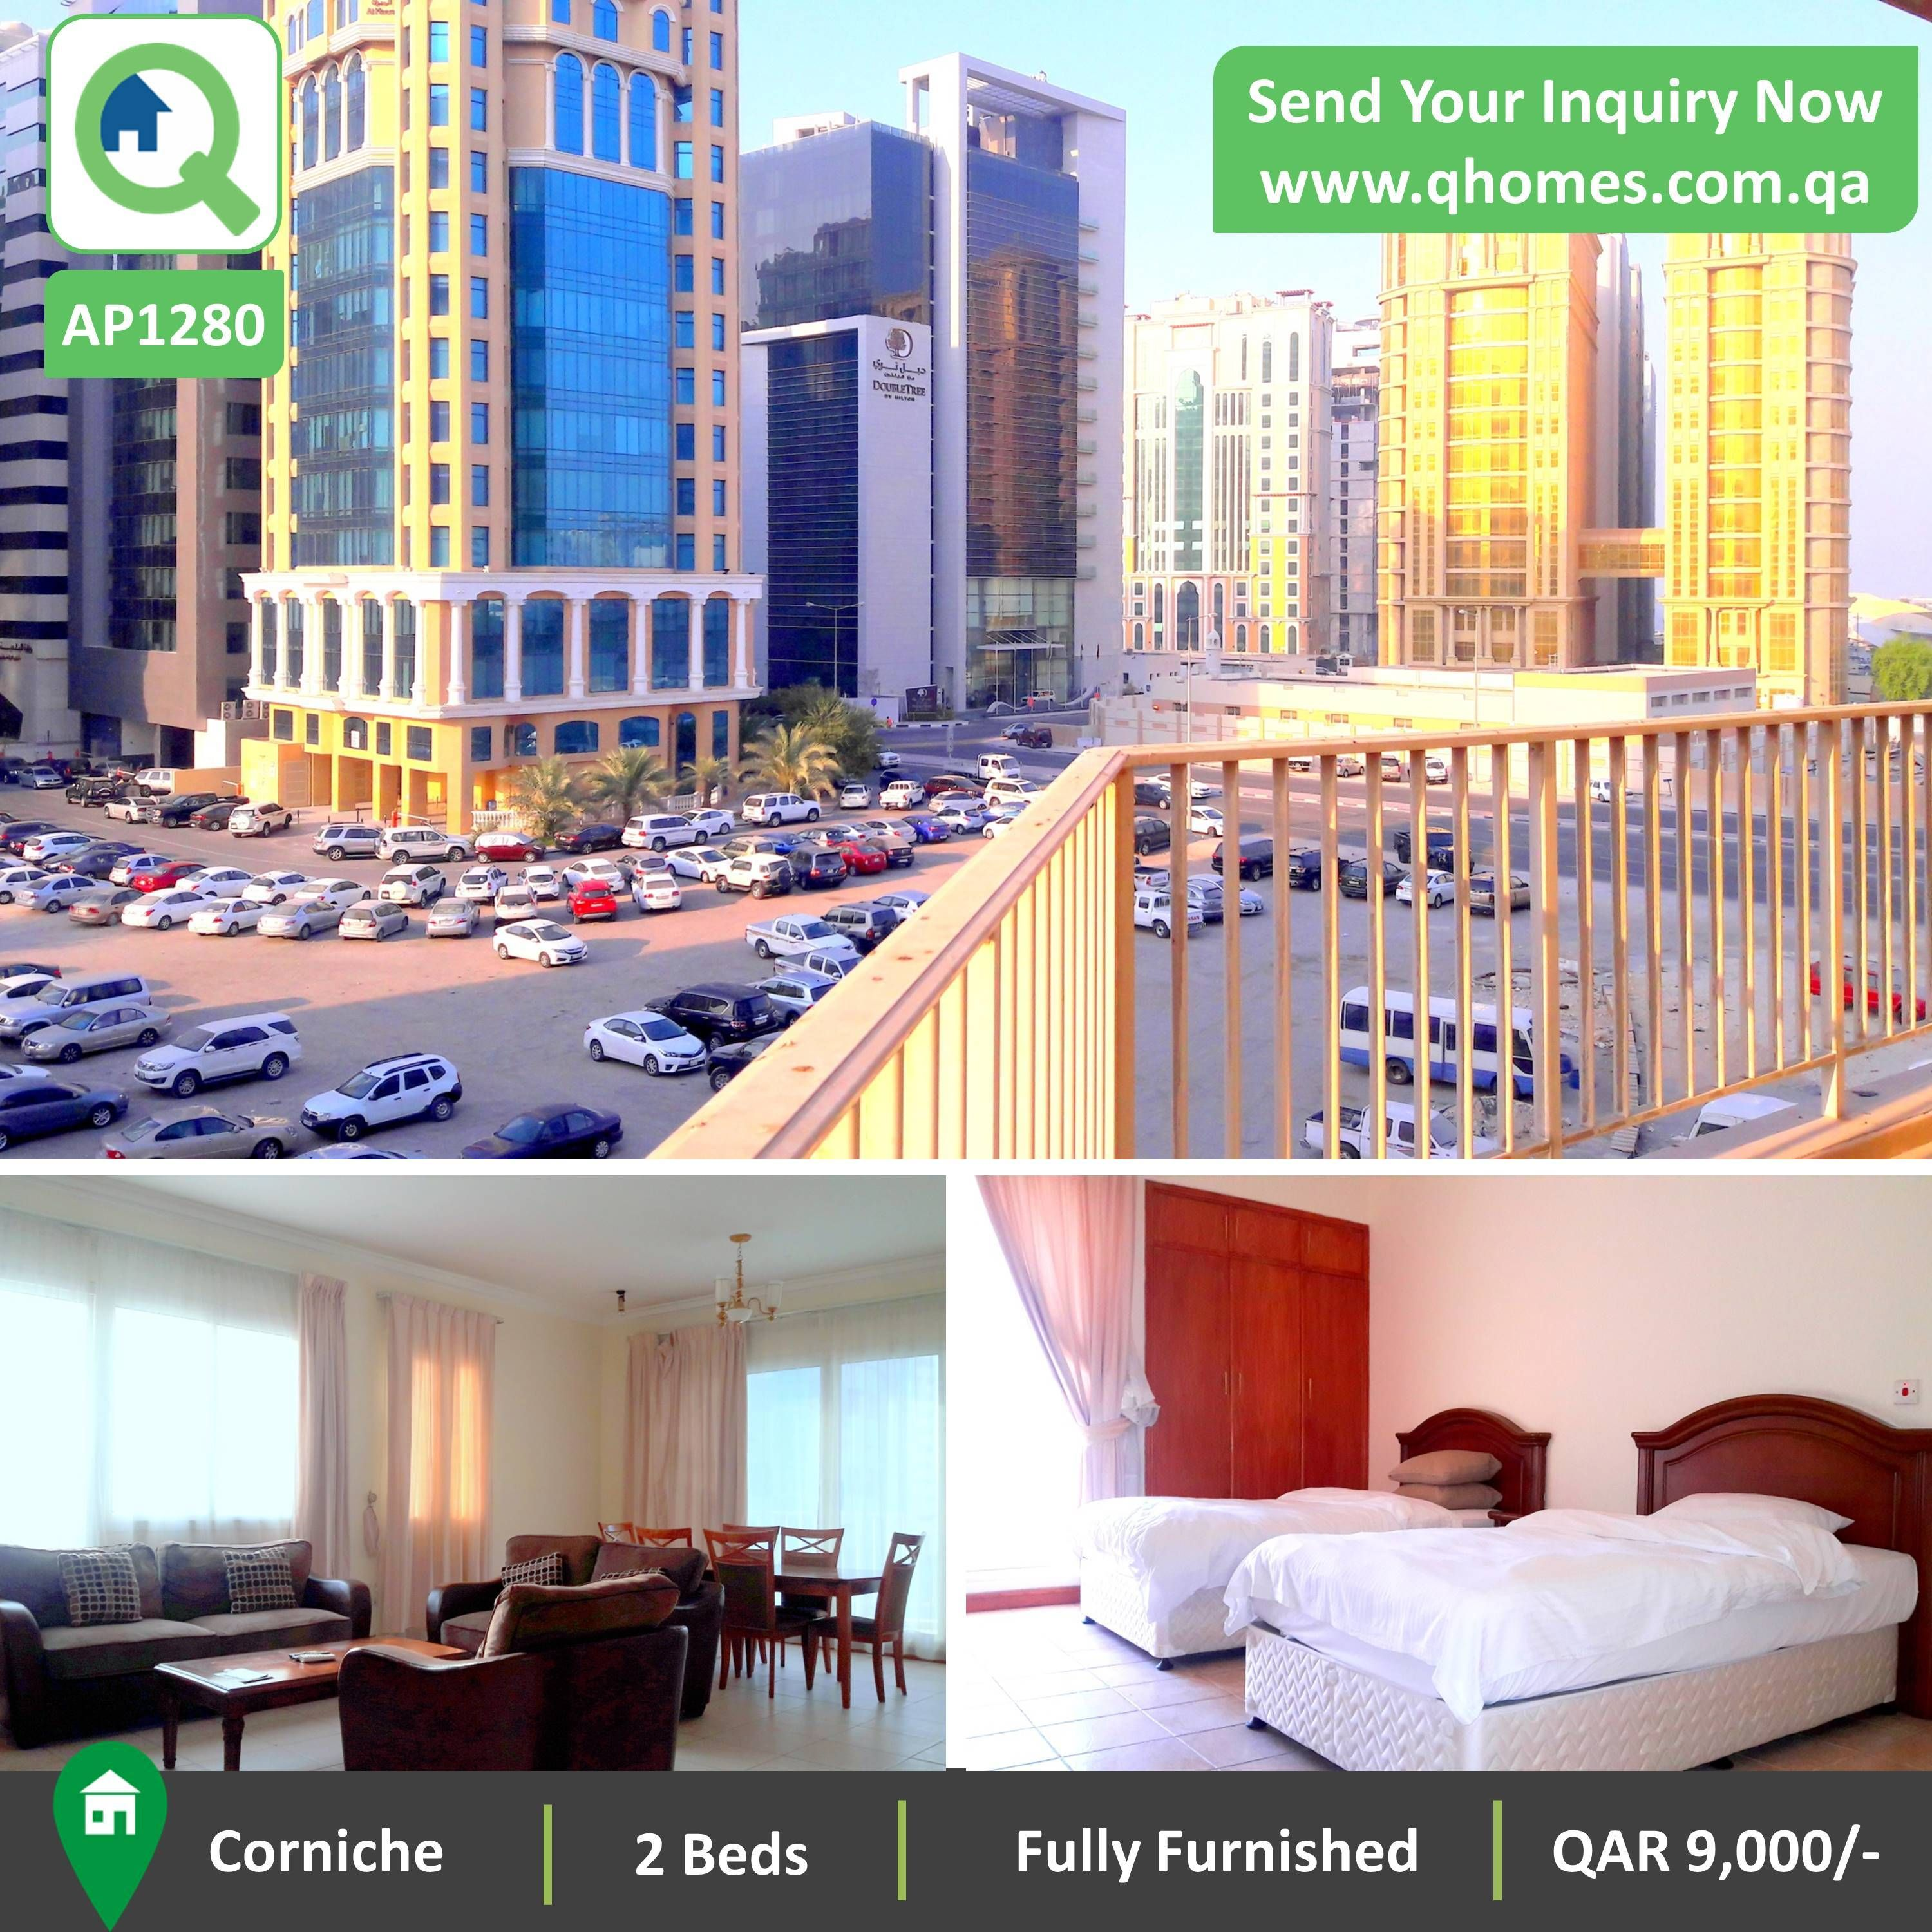 Apartment For Rent In Qatar: Fully Furnished 2 Bedrooms